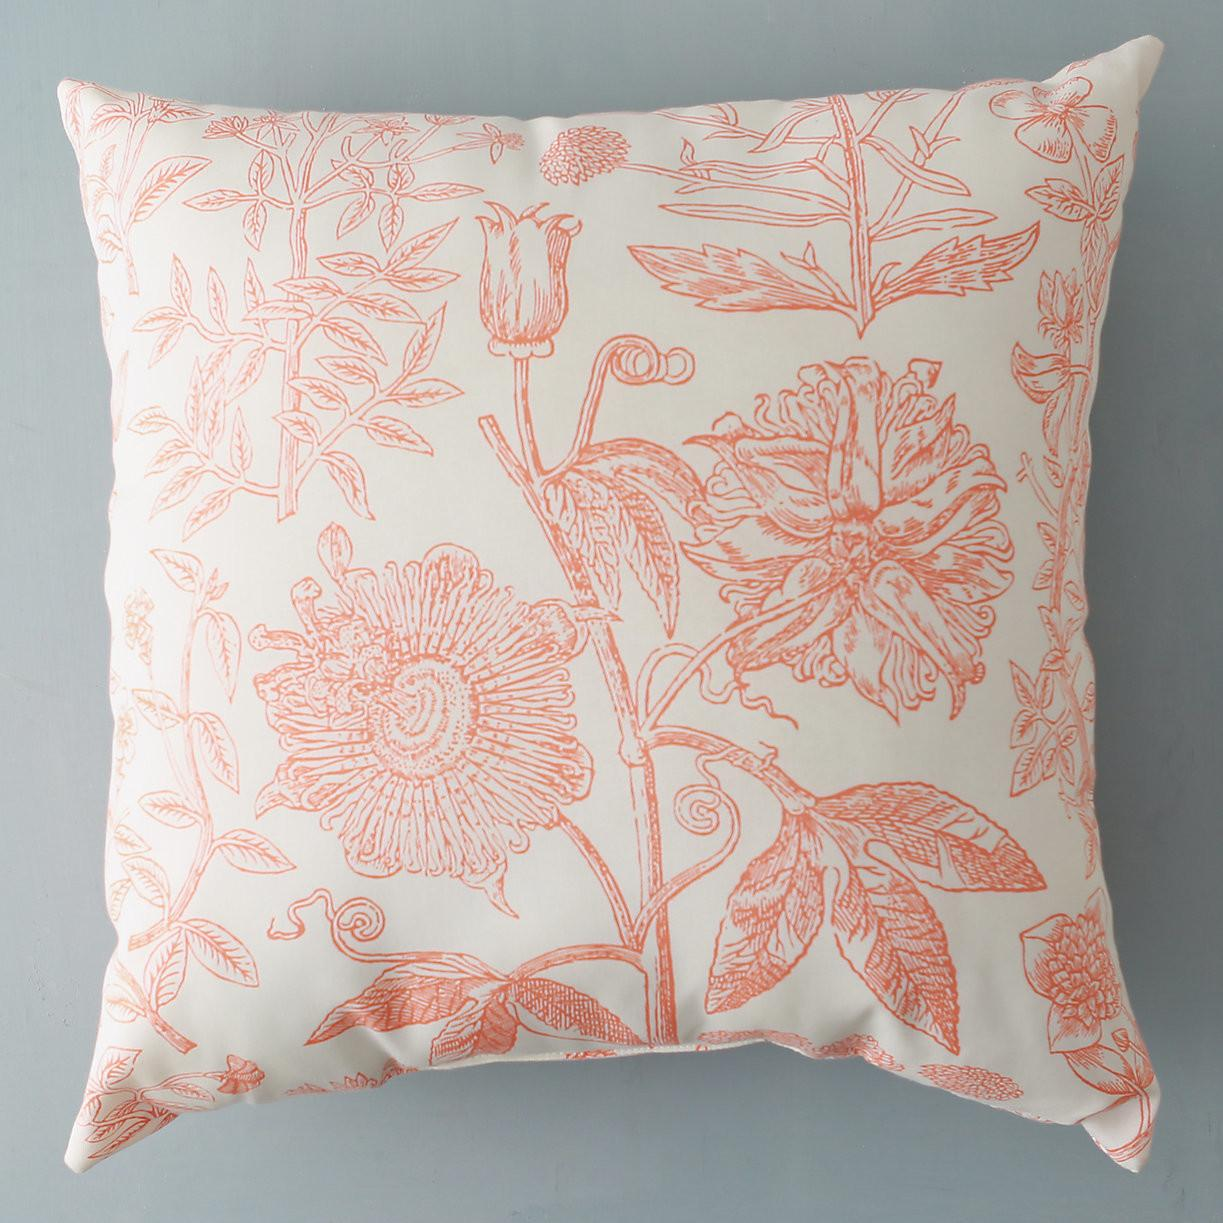 Throw Pillows Spring Edition